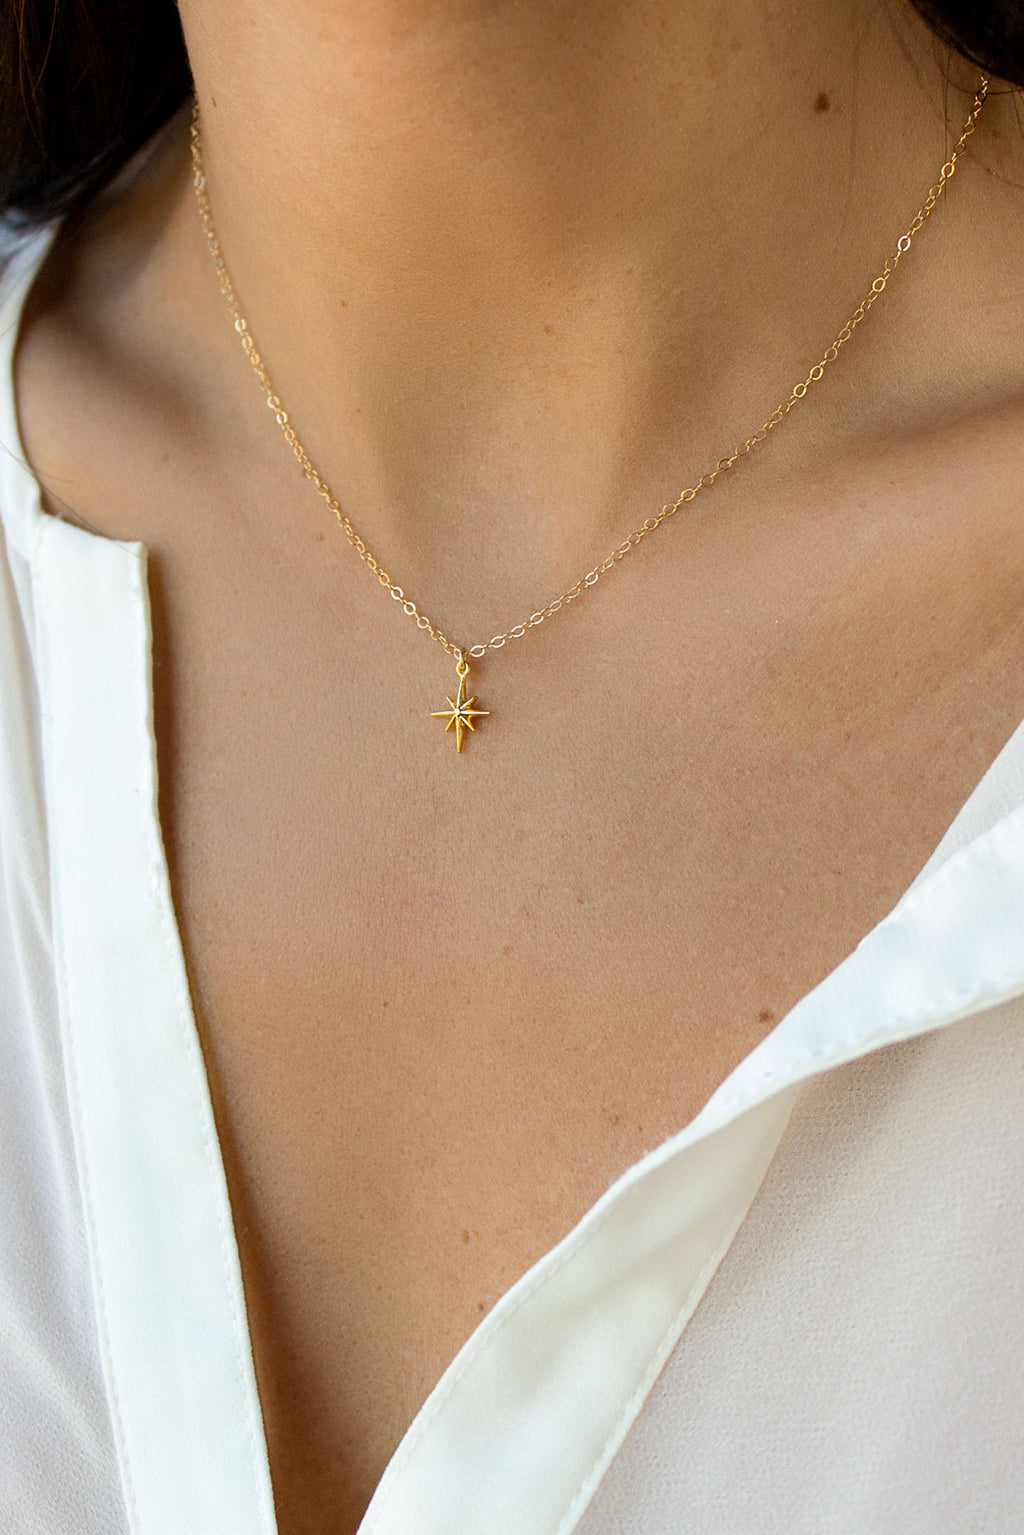 dainty star necklace